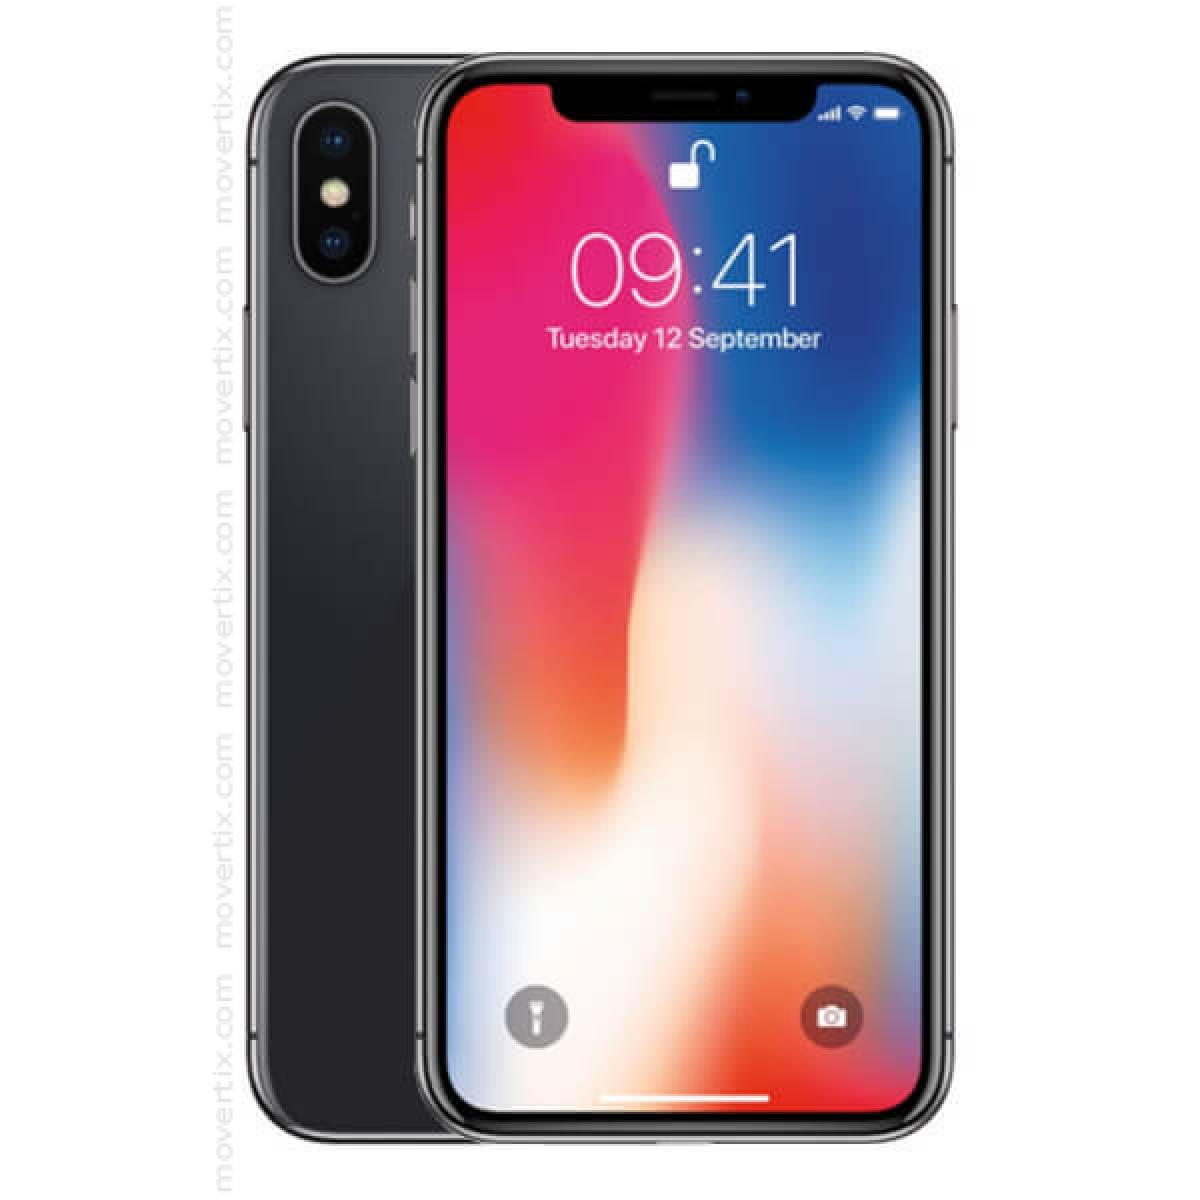 36148d5aec02 The iPhone X in space grey color with 64GB of storage comes with a new  full-screen design. Face ID, which detects your face as a password.